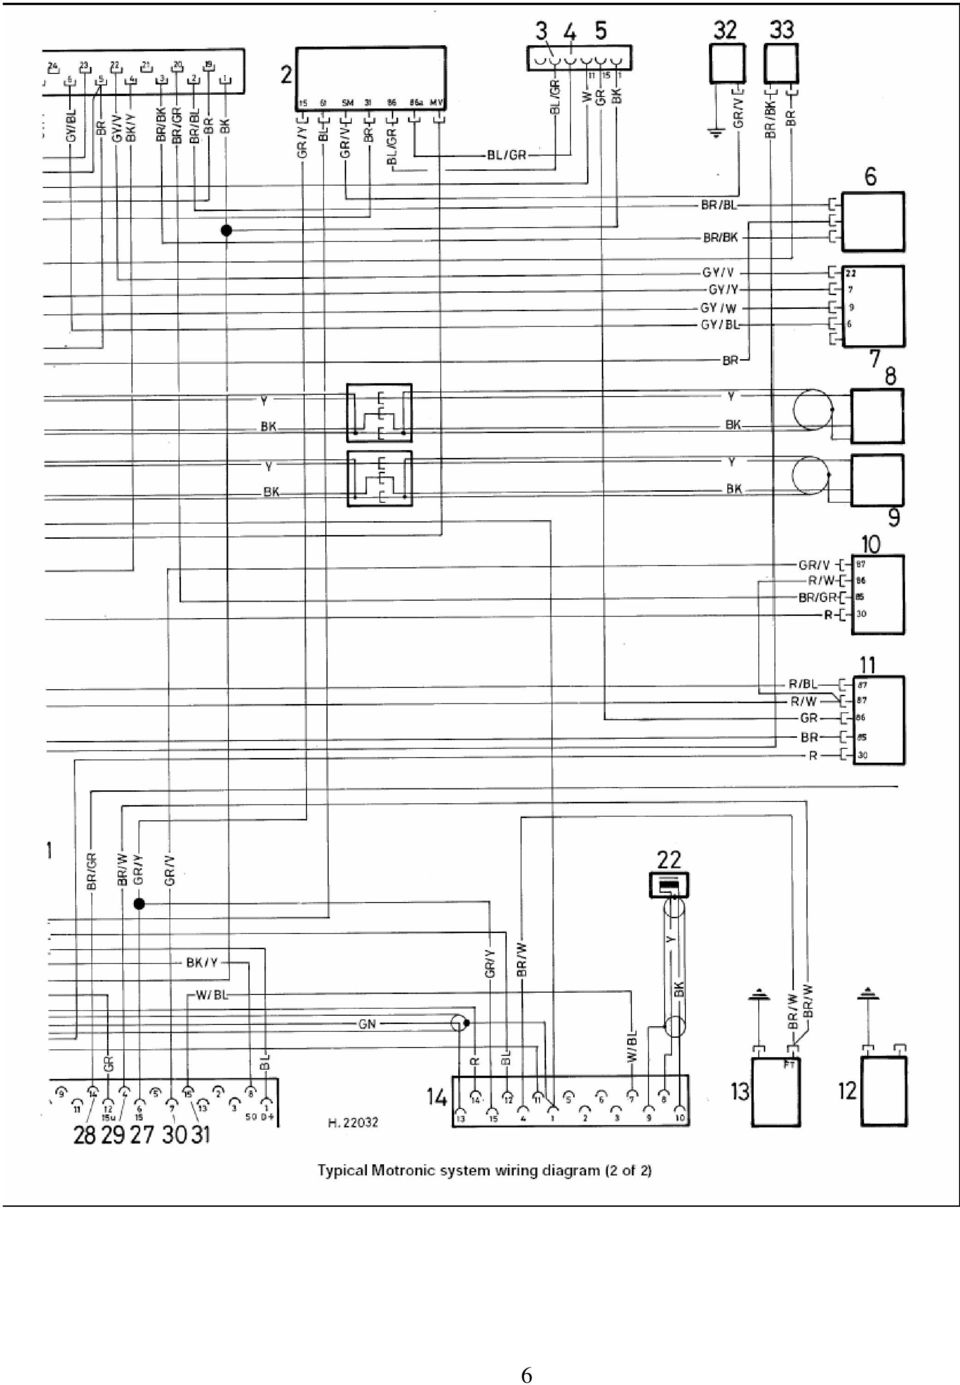 Colour Codes Diagrams Index Pdf Electronic Horn Schematic 7 Key To Motronic Engine Control System Wiring Diagram Picture 1 2 Unit Ecu 18 Distributor Speed Relay 19